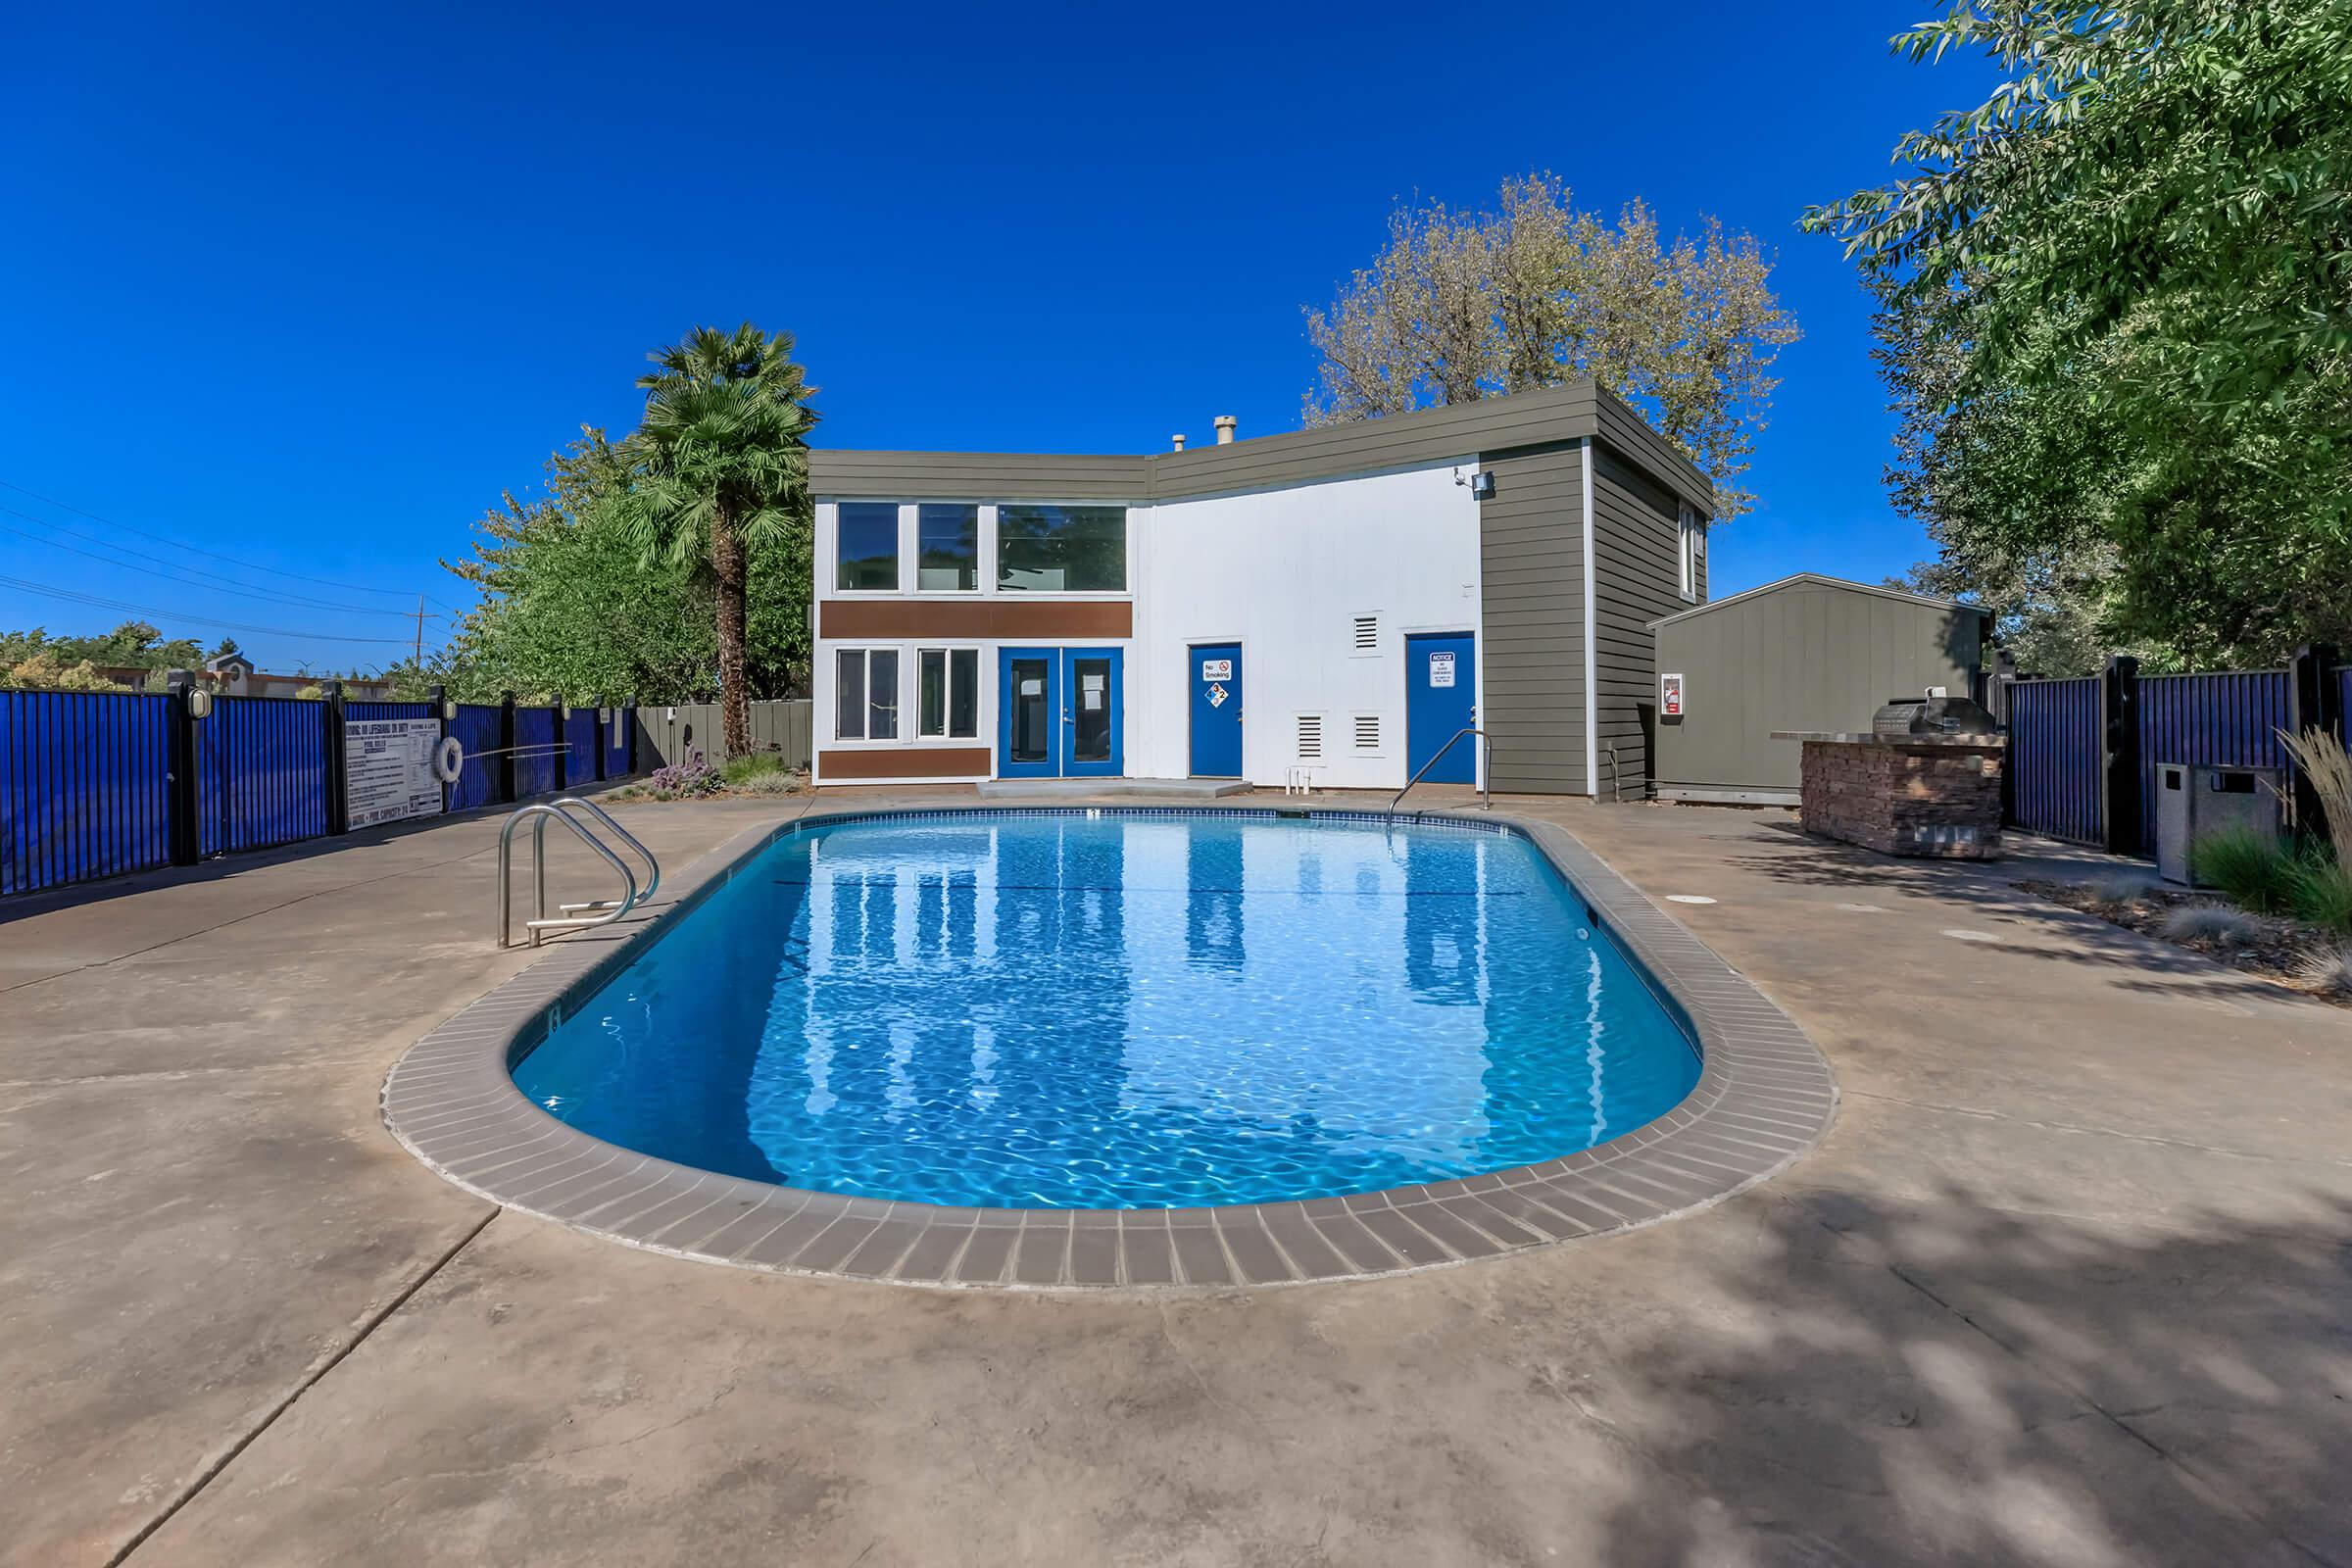 Pool at Fairway Village in San Ramon CA